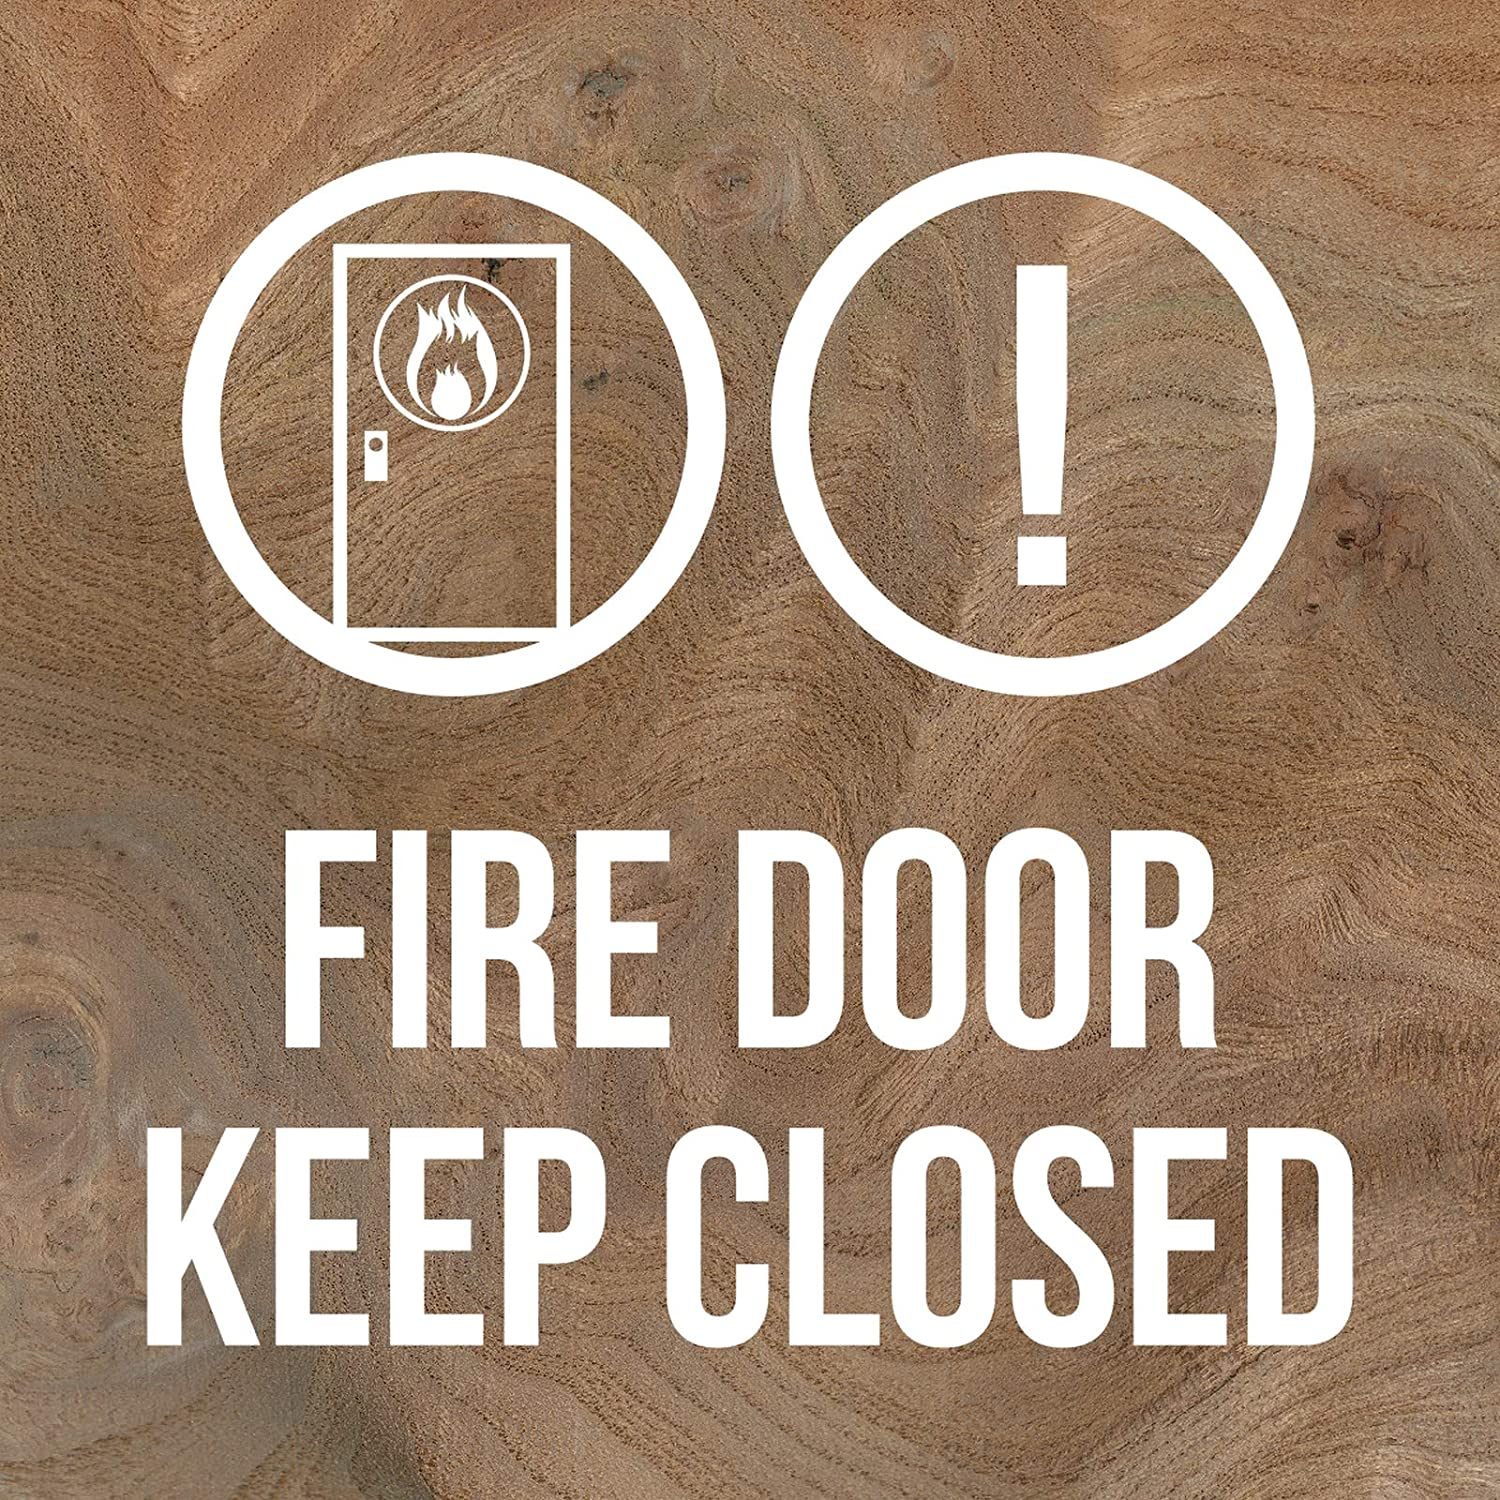 iCandy Products Inc Fire Door Keep Closed! Hotel Business Office Building Sign 12x12 Inches, Elm Burl, Plastic